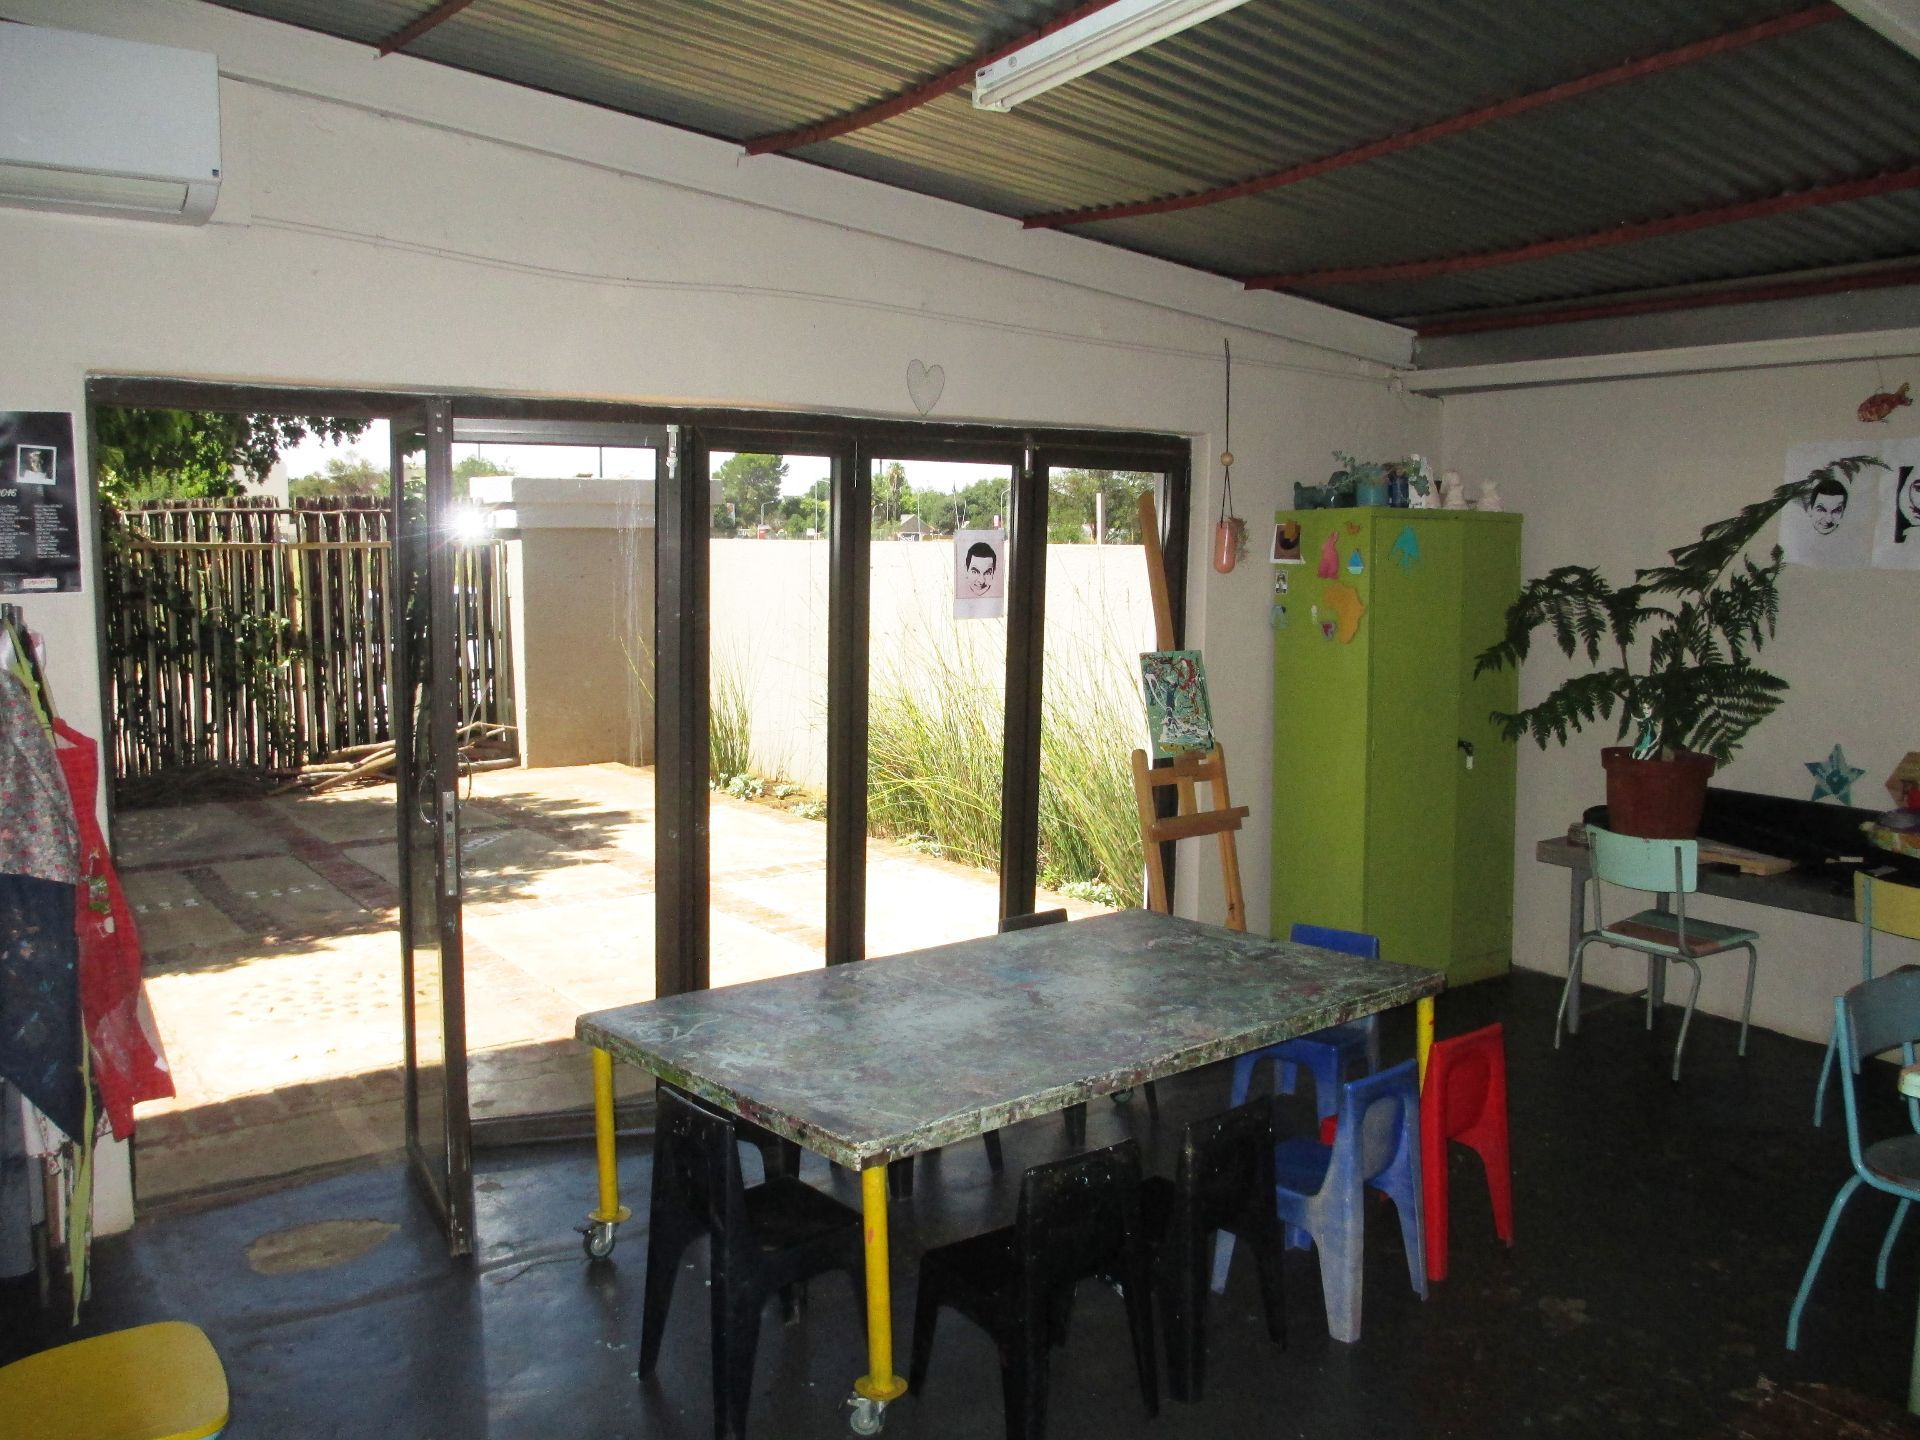 Potchefstroom Central property for sale. Ref No: 13580277. Picture no 15